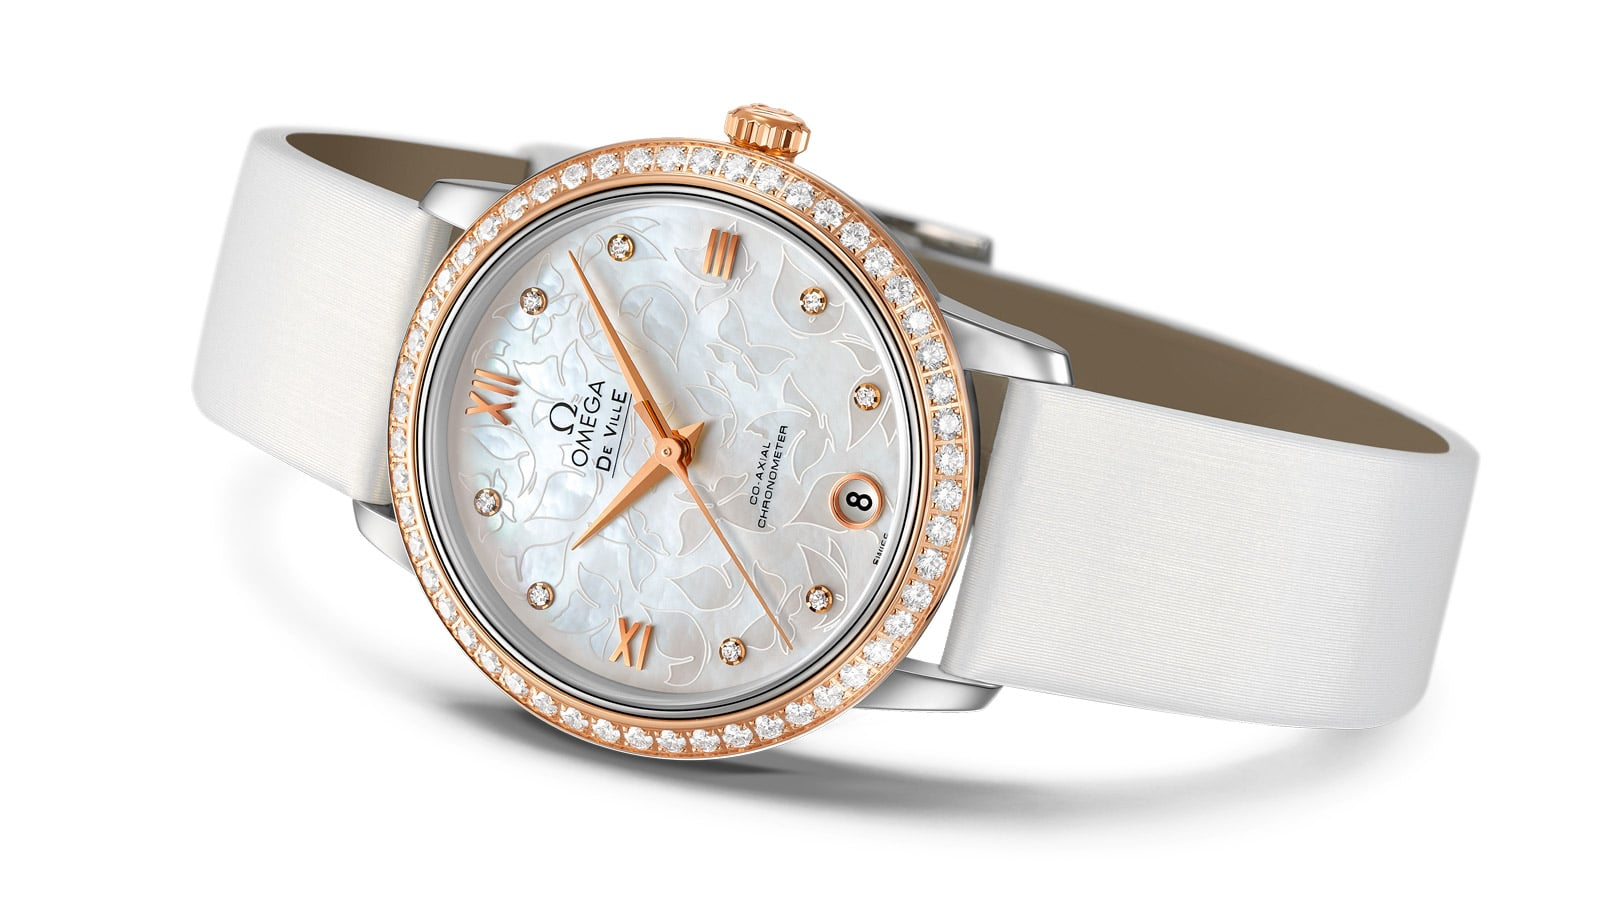 Elegant Prestige butterfly with a white strap, rose gold dial with encrusted diamonds and mother-of-pearl dial engraved with butterflies